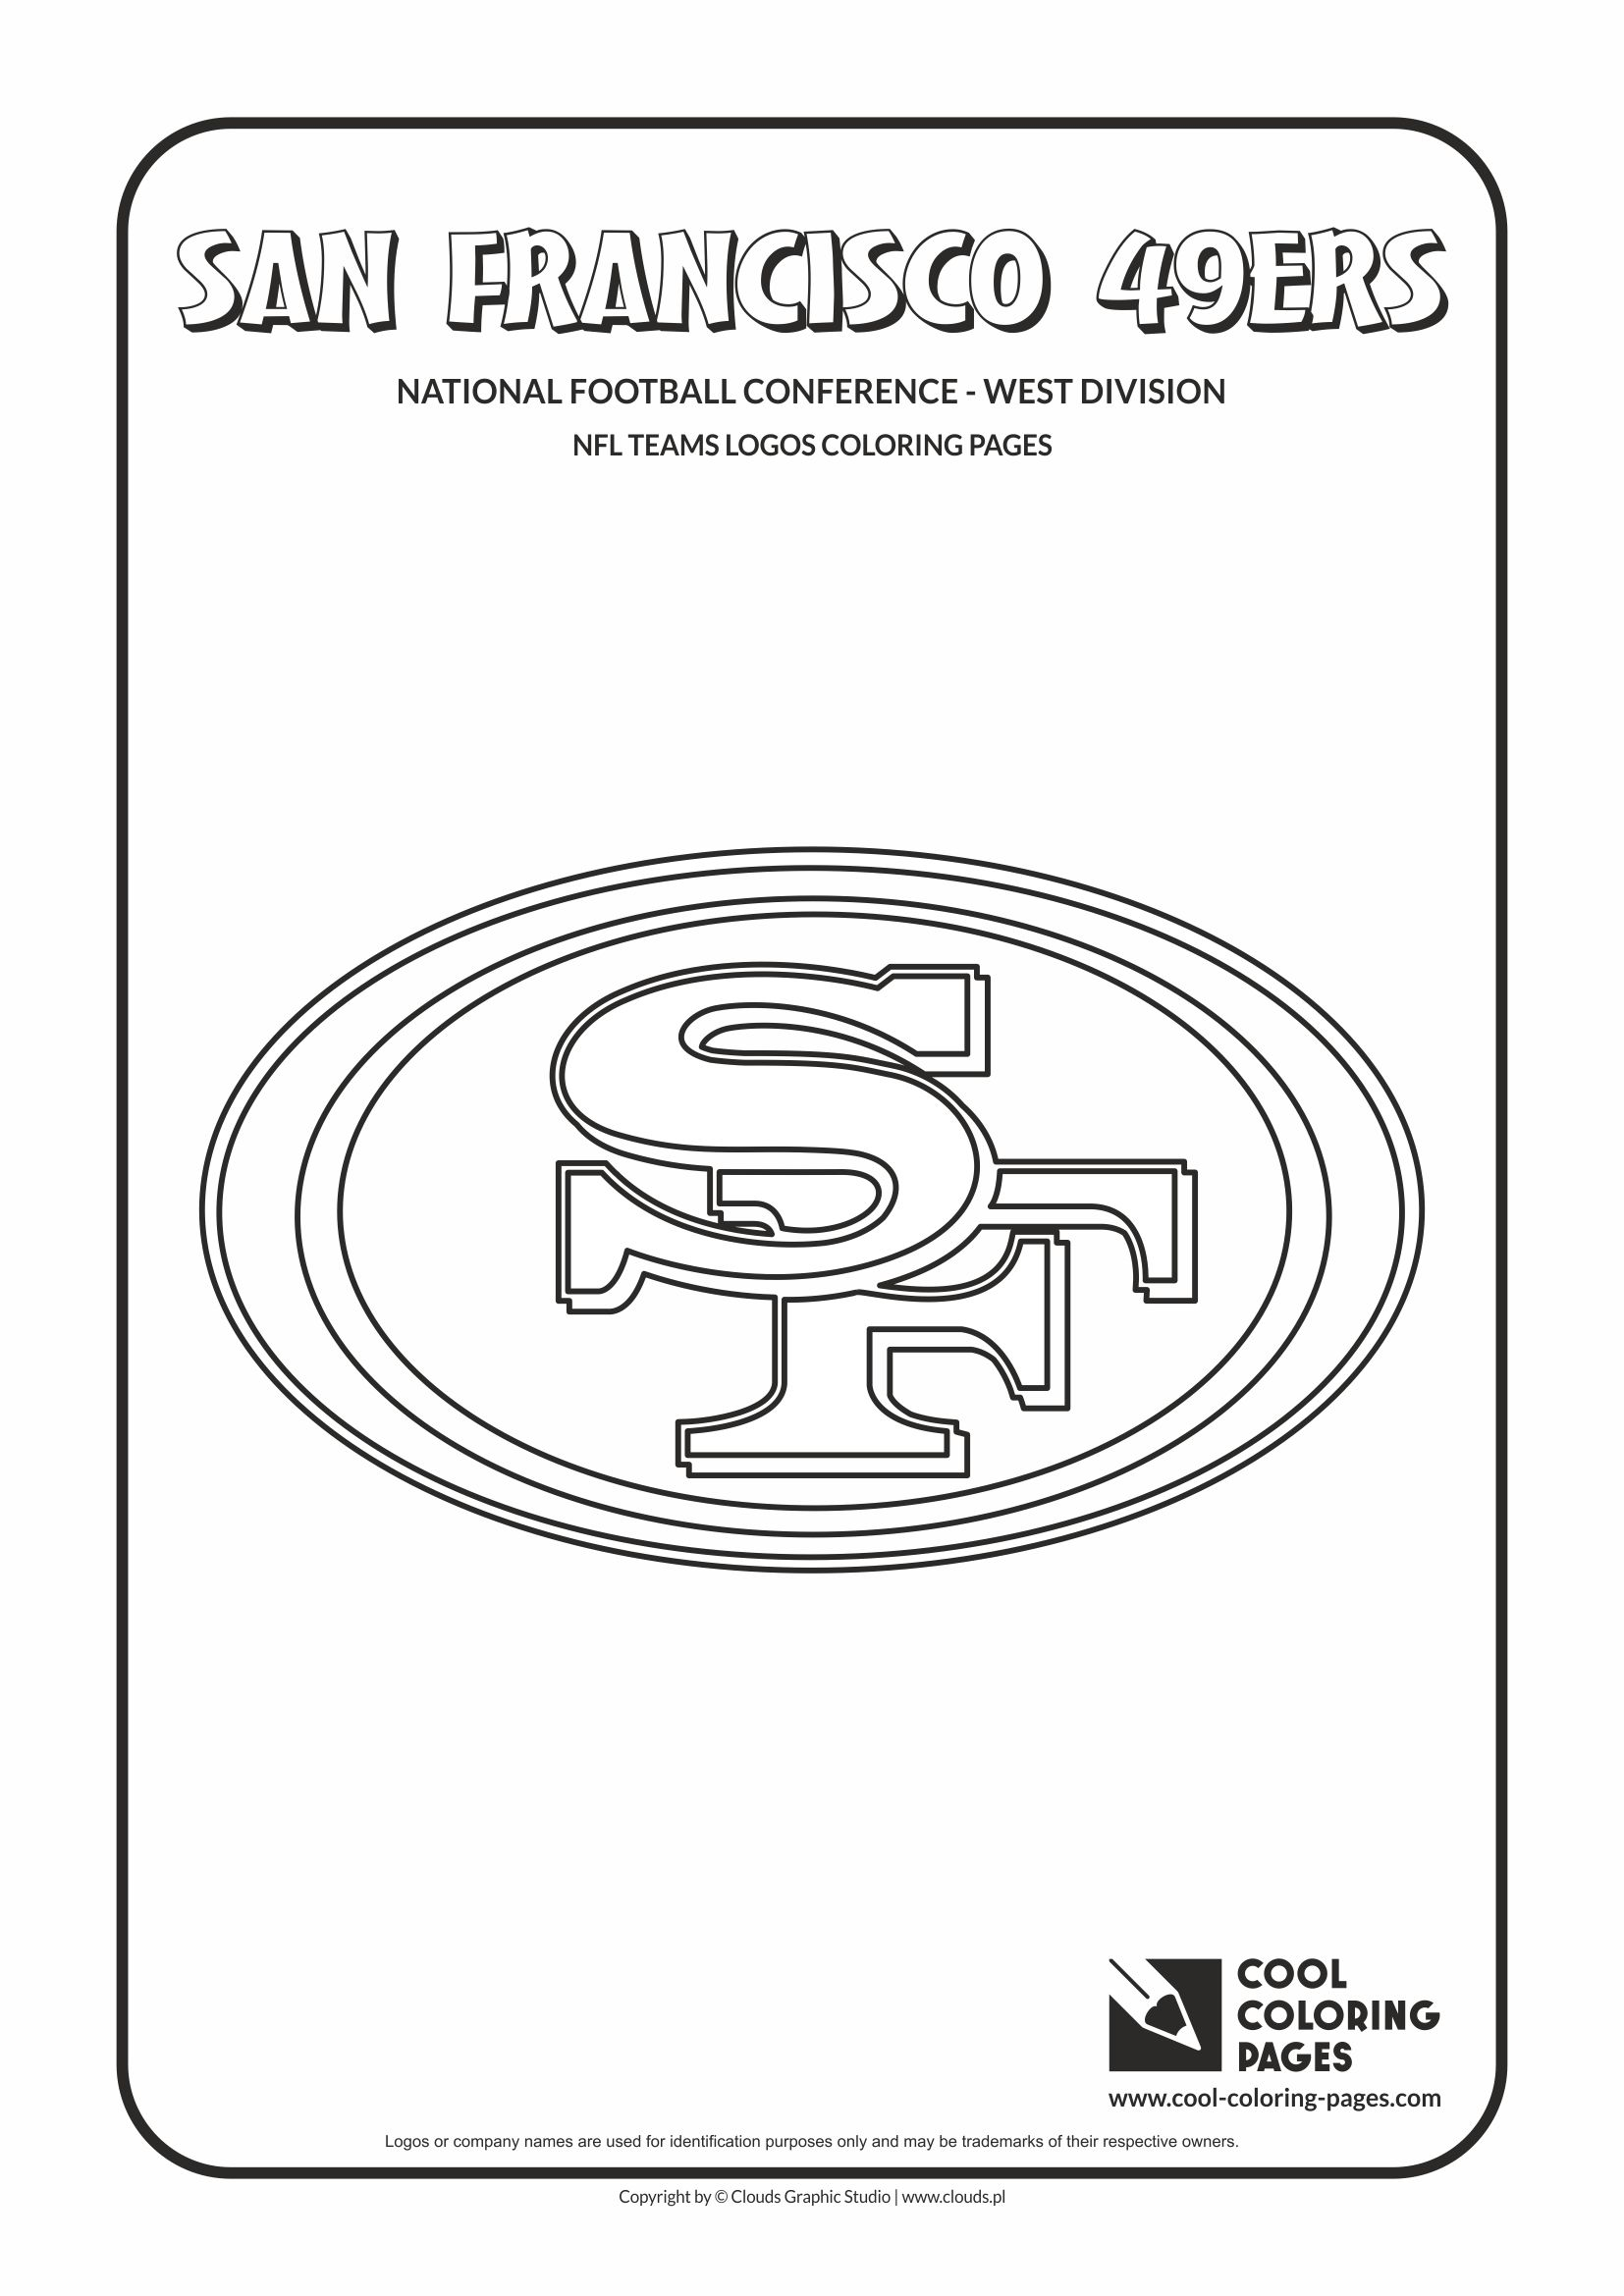 Cool Coloring Pages - NFL American Football Clubs Logos - National Football Conference - West Division / San Francisco 49ers logo / Coloring page with San Francisco 49ers logo